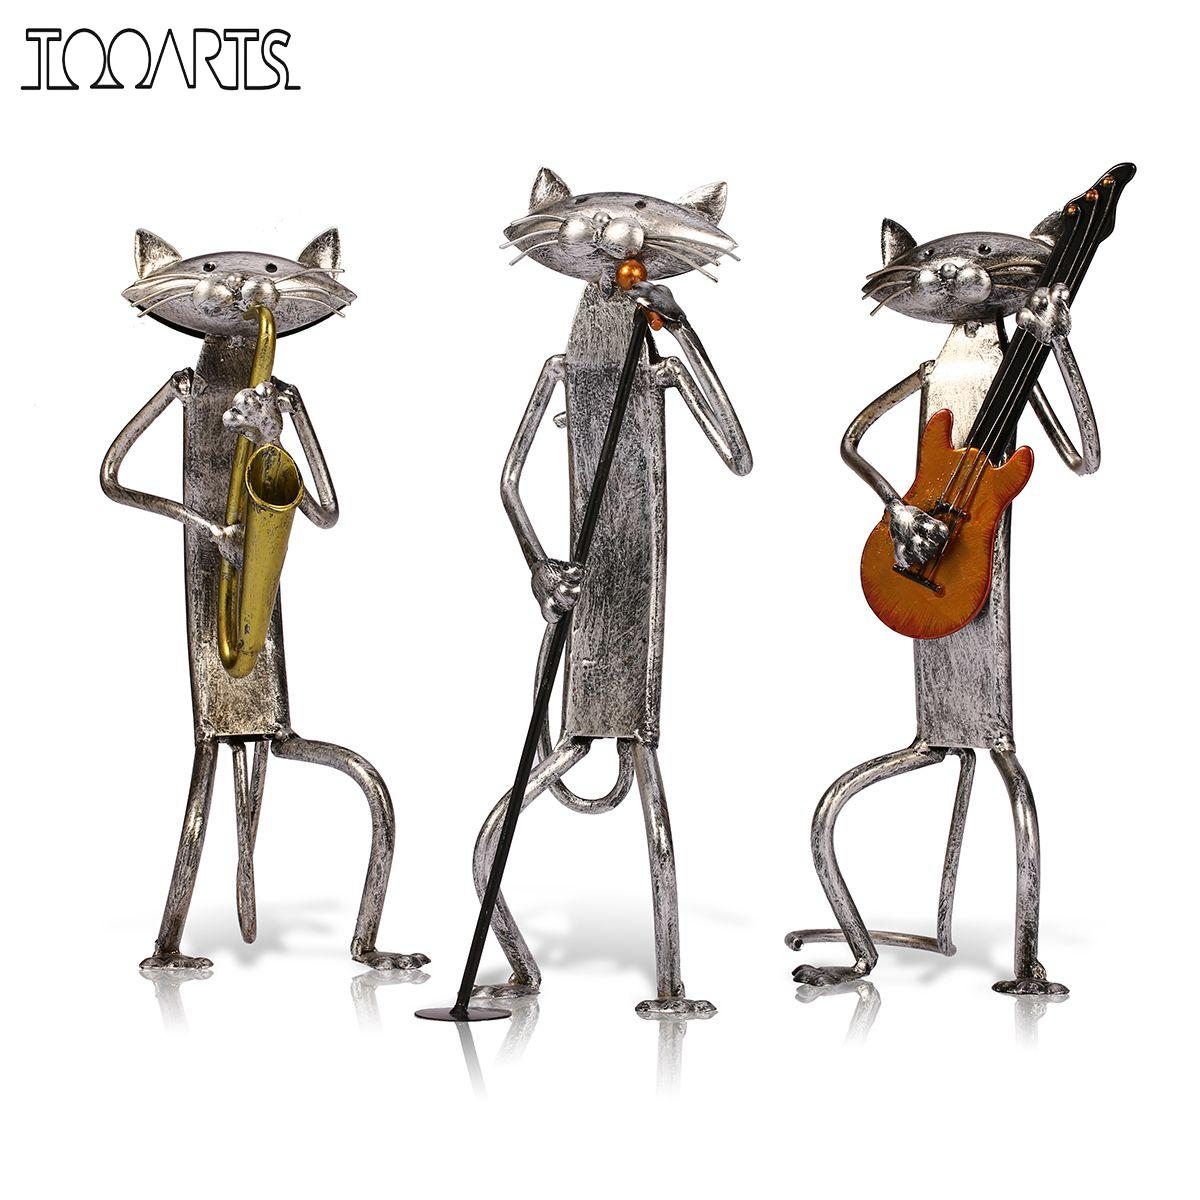 product Tooarts Metal Figurine A Playing Guitar/Saxophone/Singing Cat Figurine Furnishing Articles Craft Gift For Home Decoration